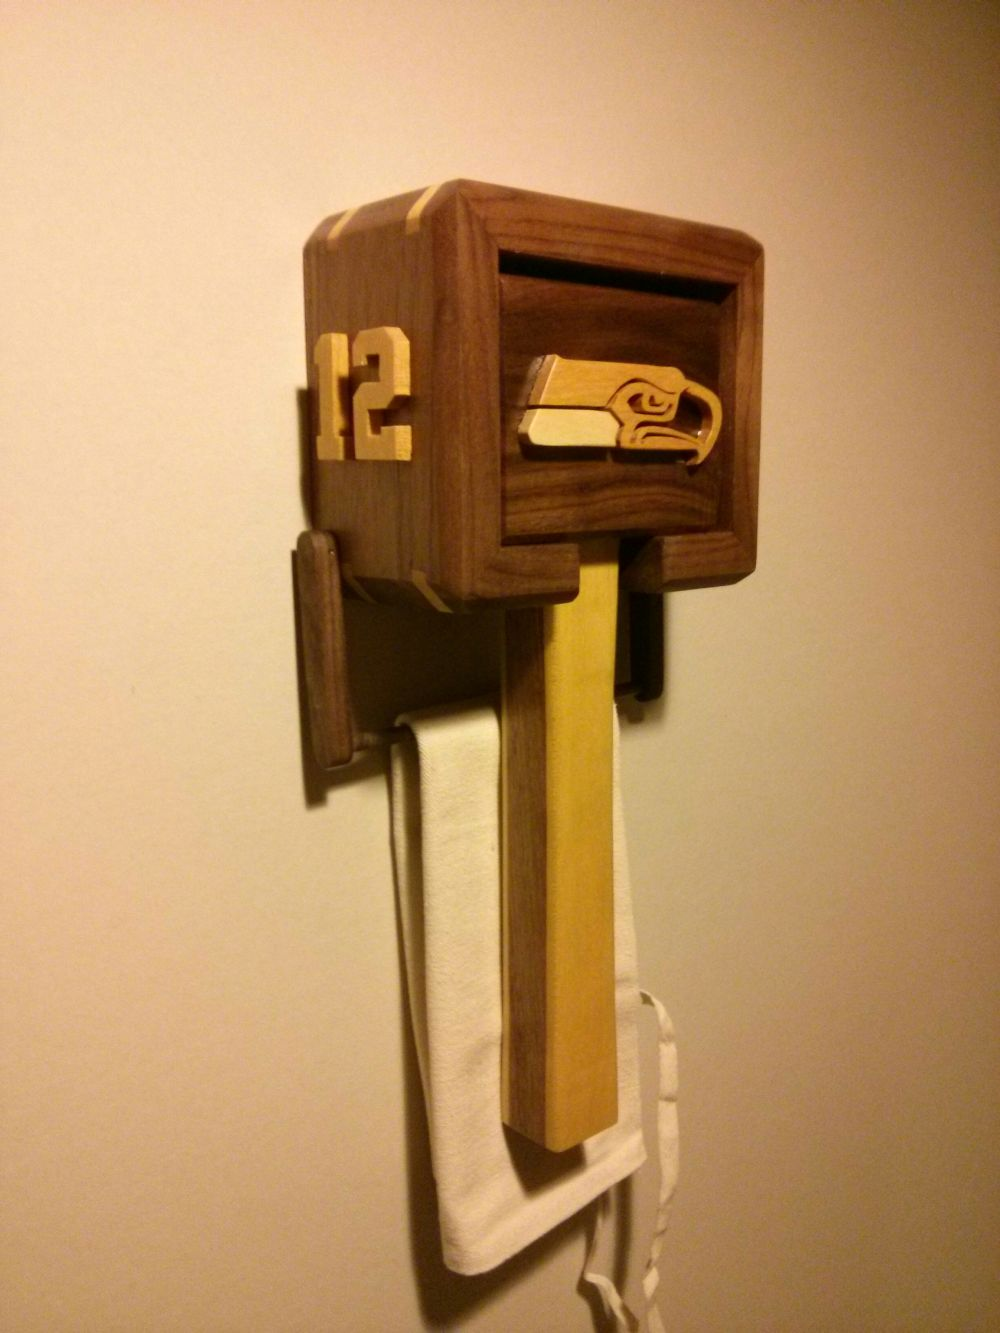 Inlaid wood Seahawks-themed ice hammer